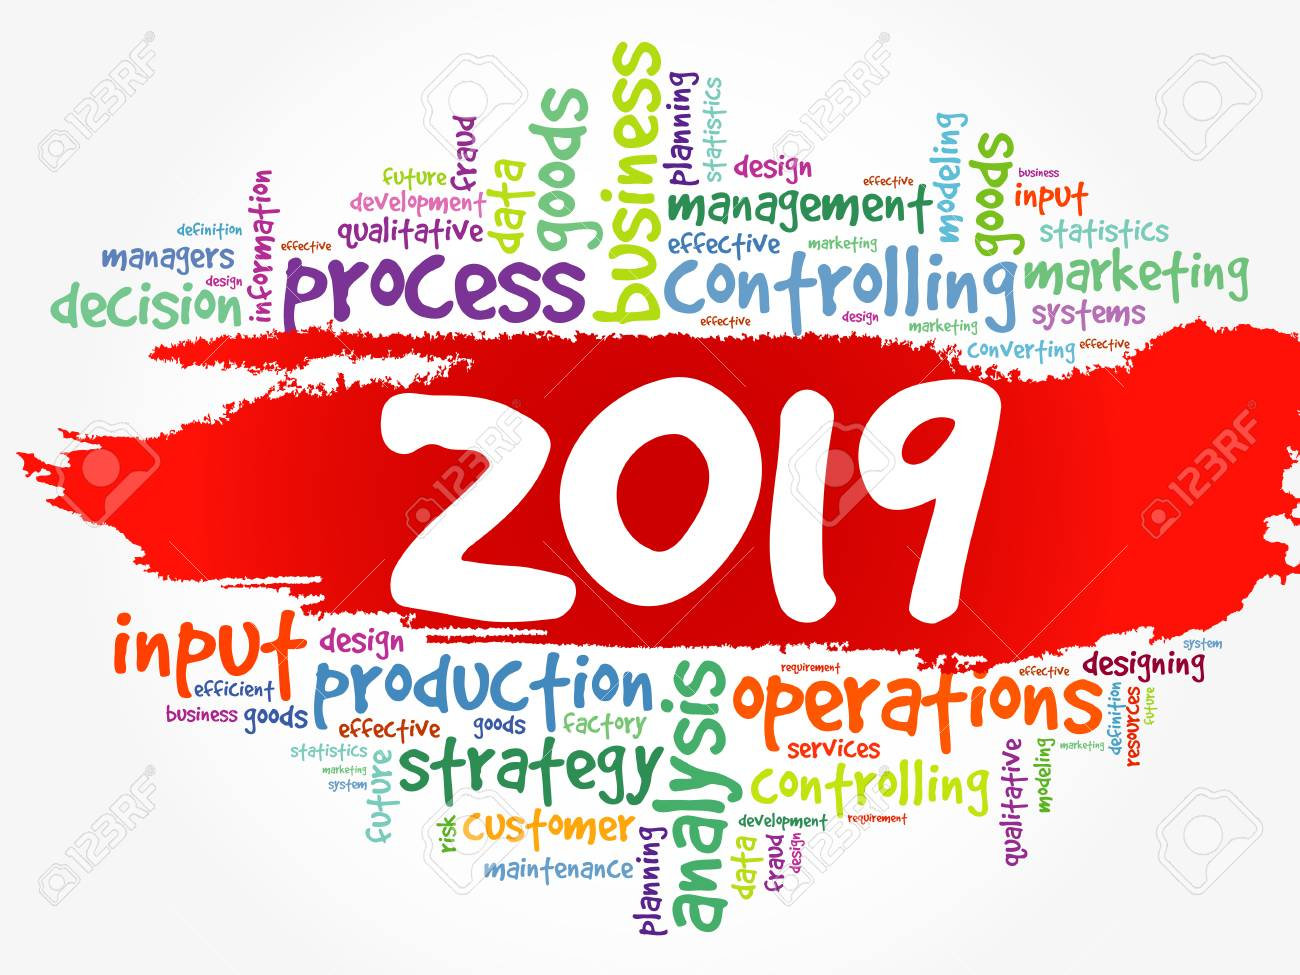 2019 goals plan, project word cloud, business concept background.